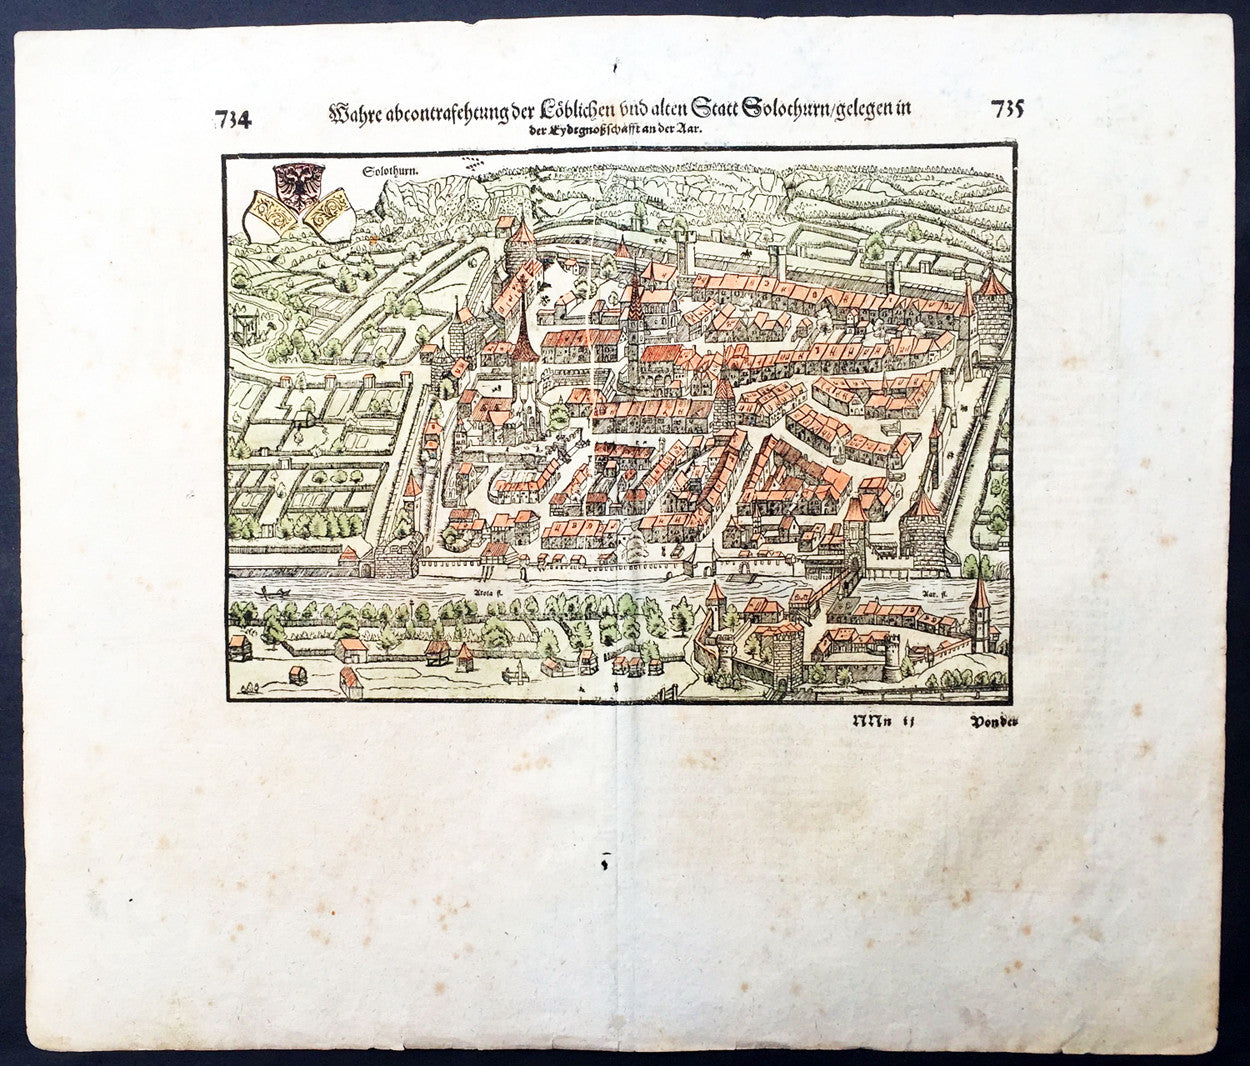 1628 Sebastian Munster Old Antique Print View of City of Solothurn